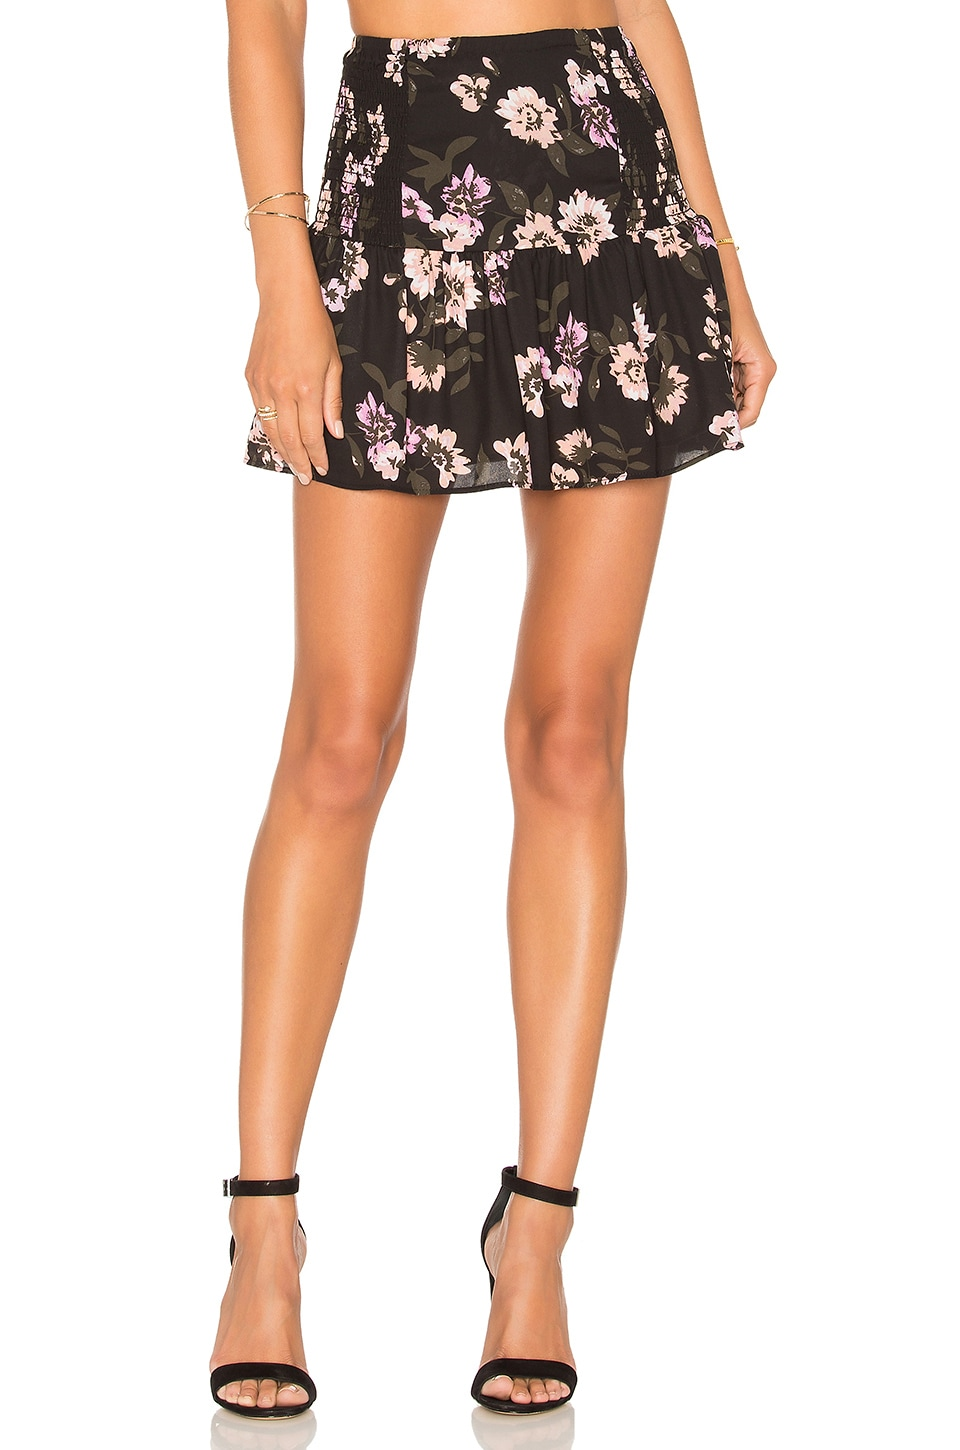 Peach Blossom Mini Skirt by Eight Sixty